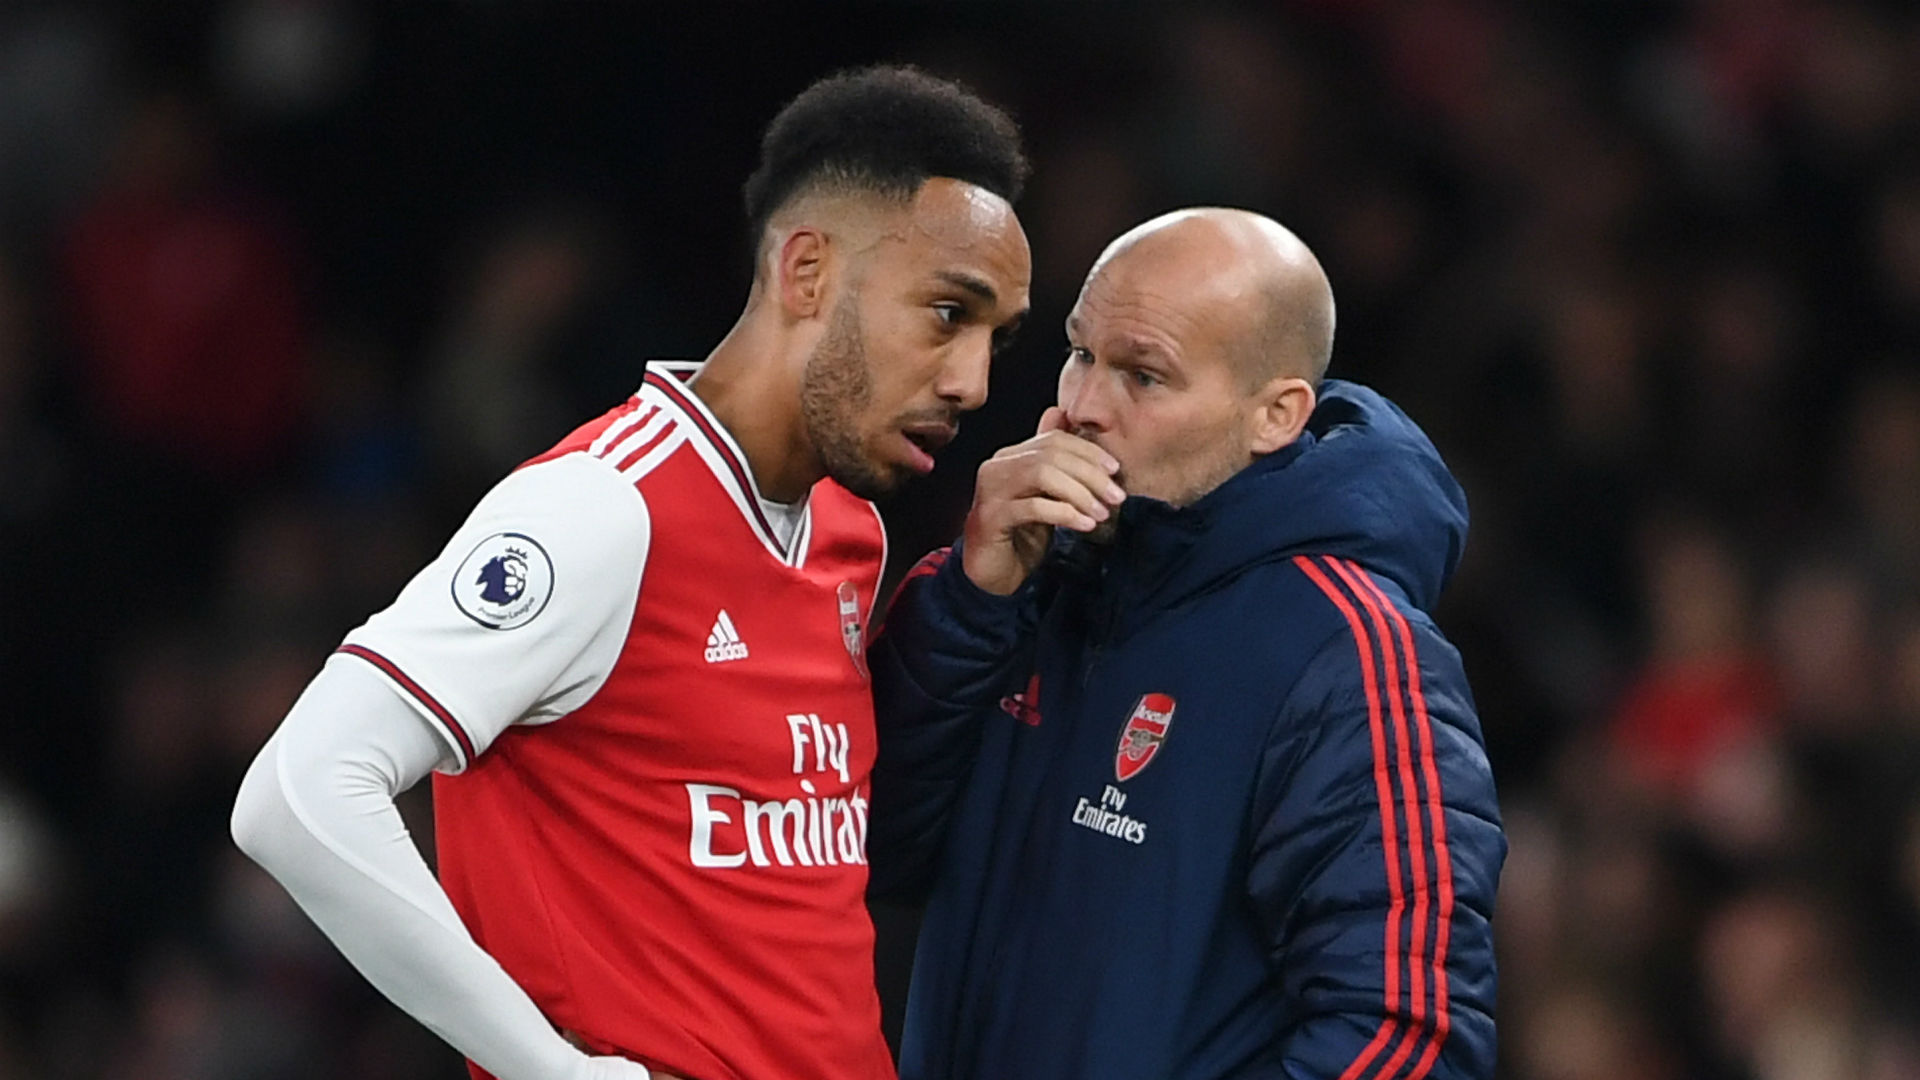 Arsenal sack Emery: Ljungberg wants 'smiles on faces again'